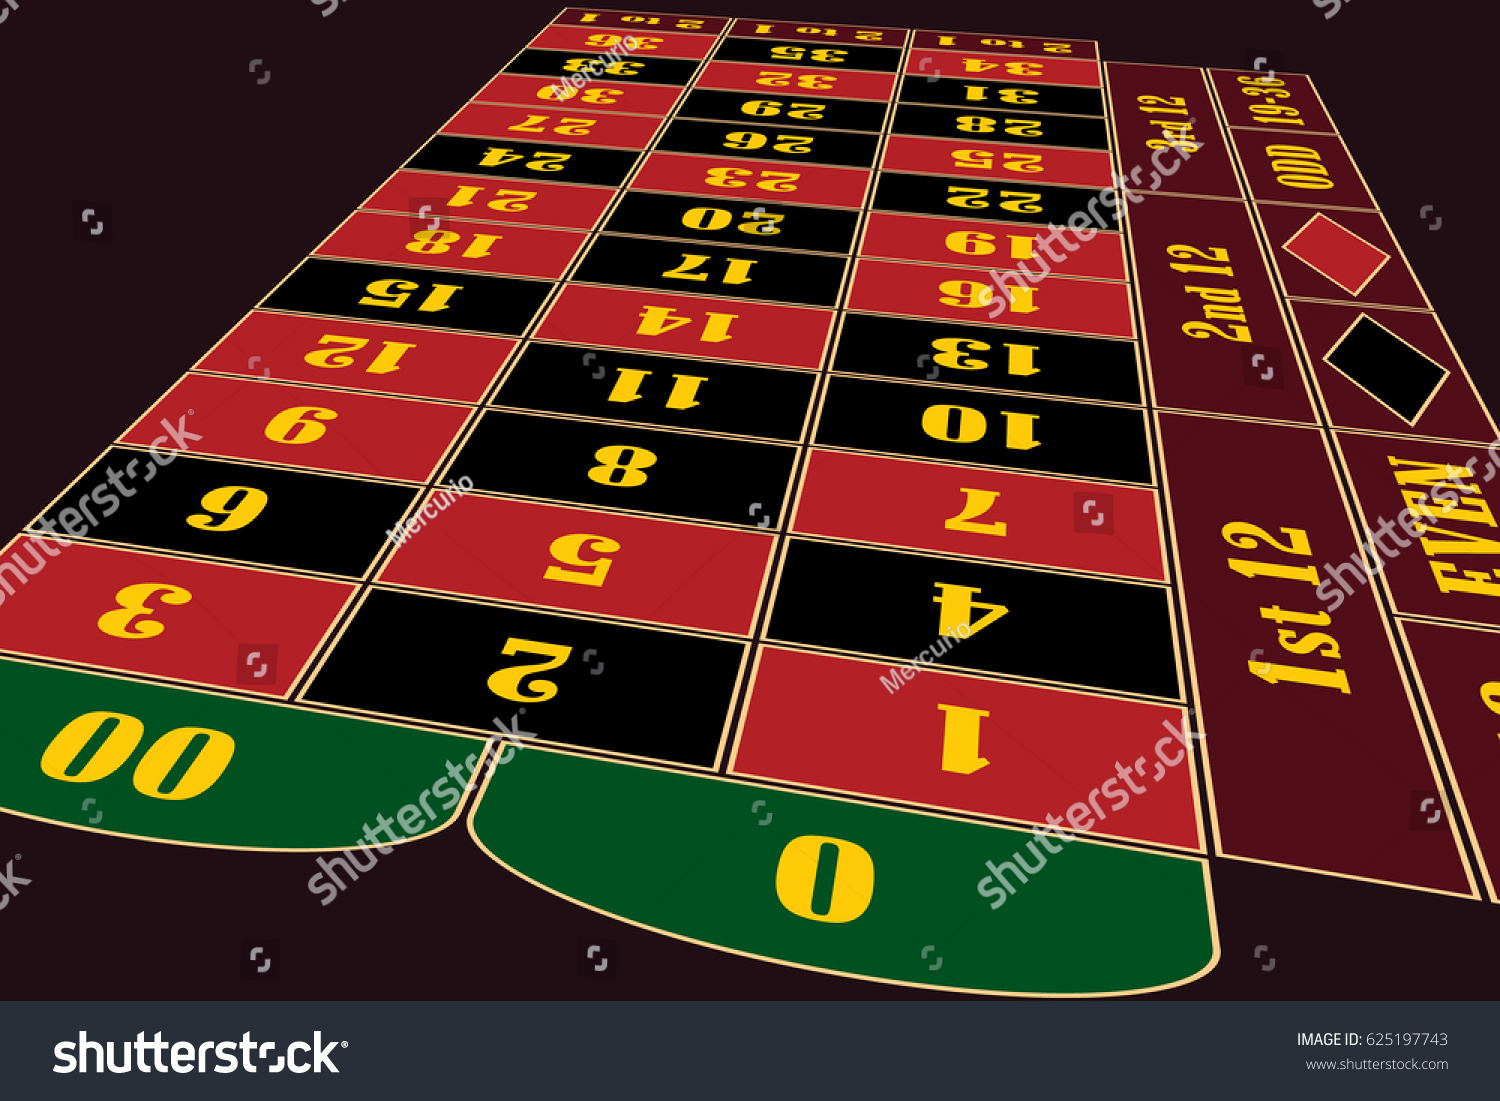 Traditional european roulette table vector illustration stock vector - Traditional American Roulette Table Perspective Vector Illustration